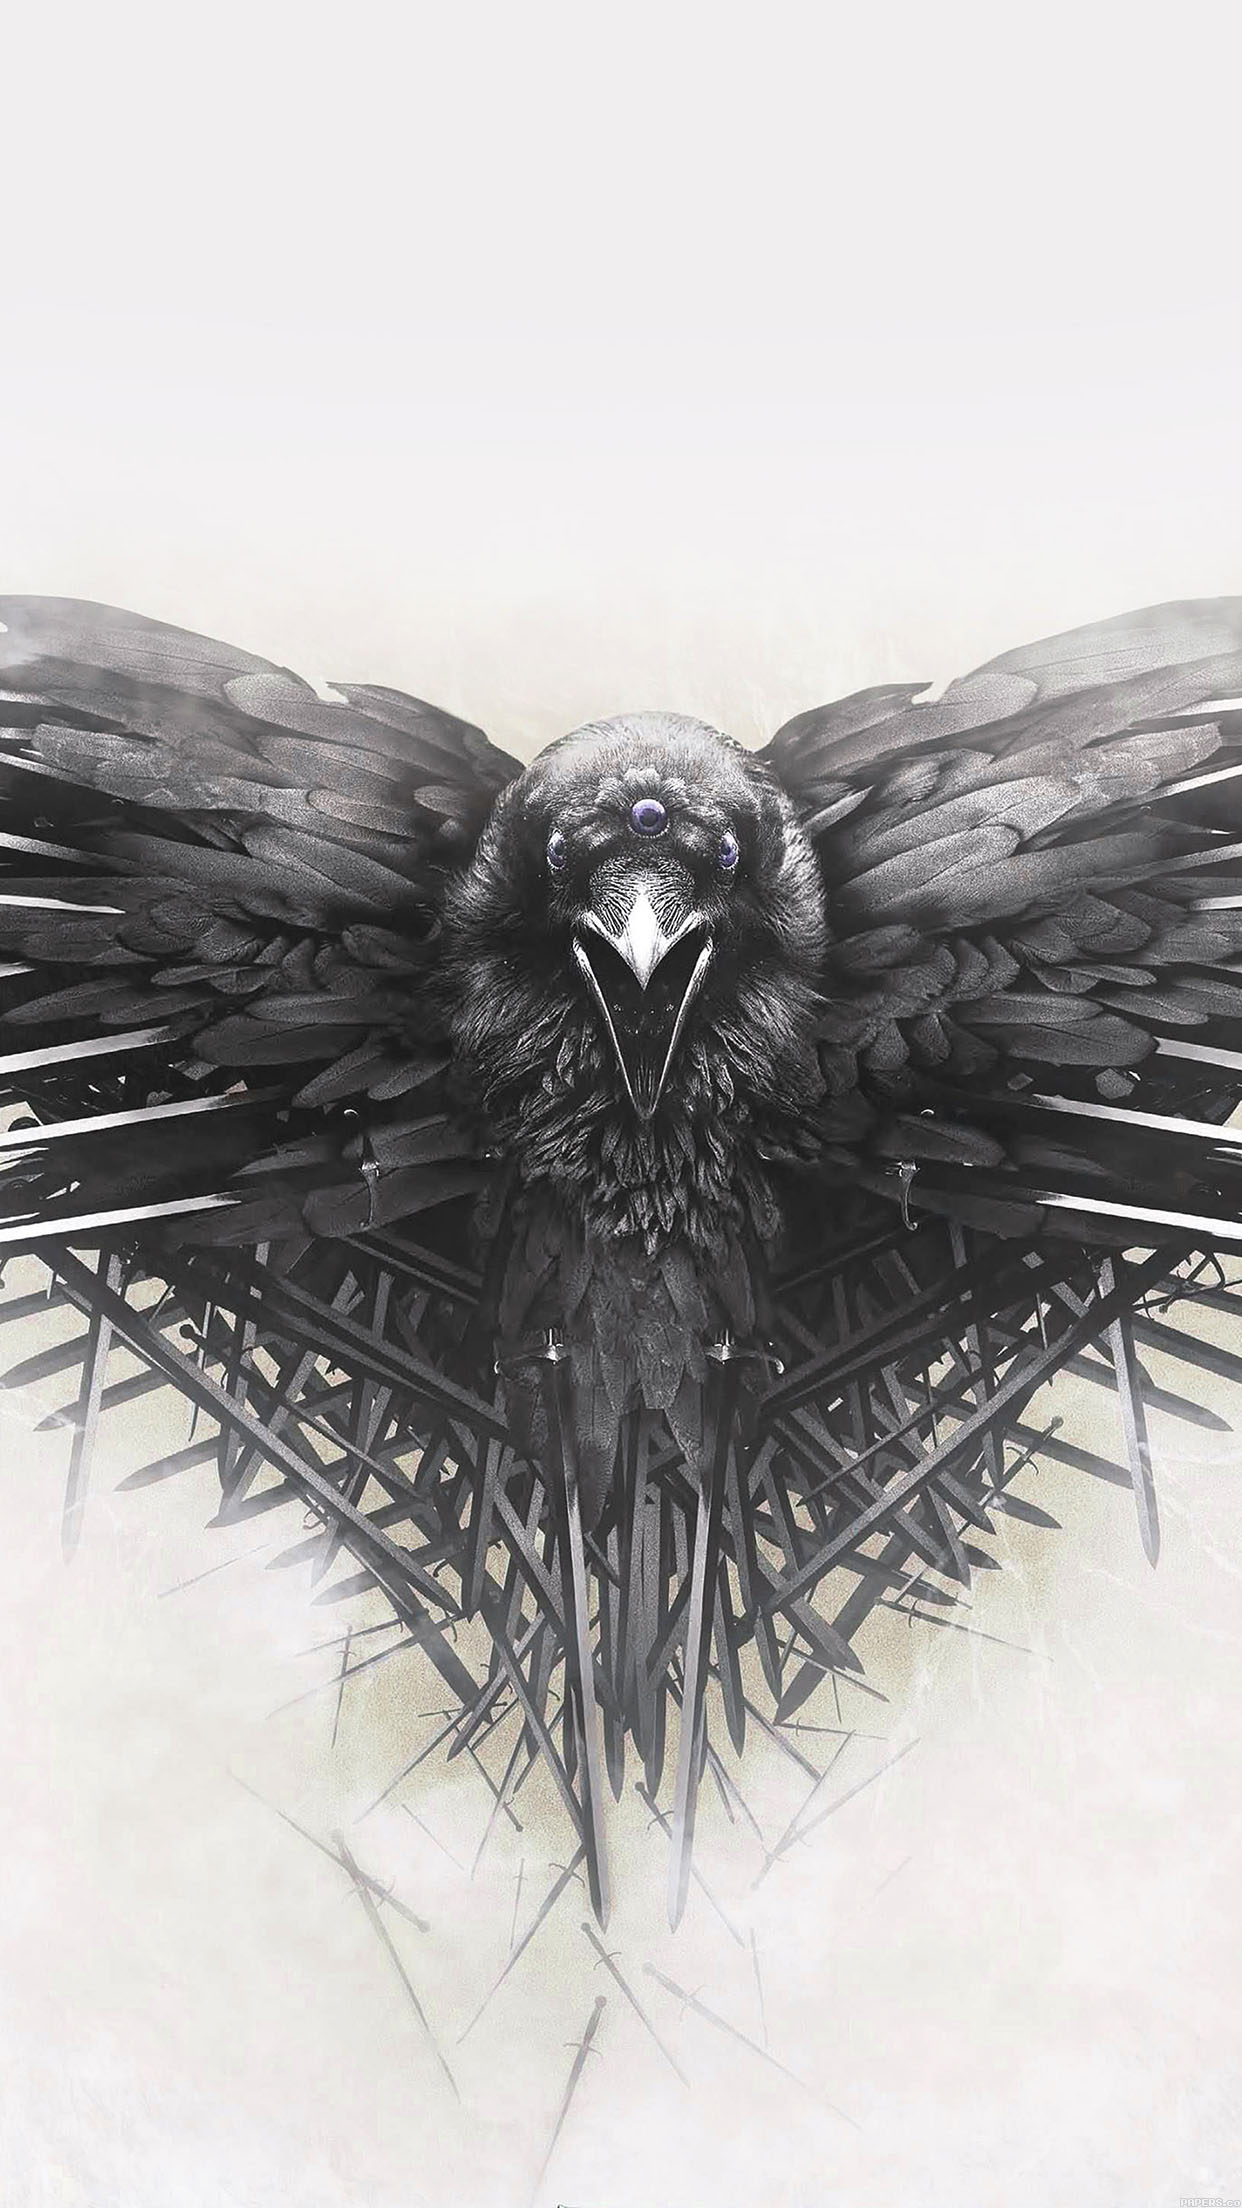 Game Of Thrones Wallpapers For Iphone